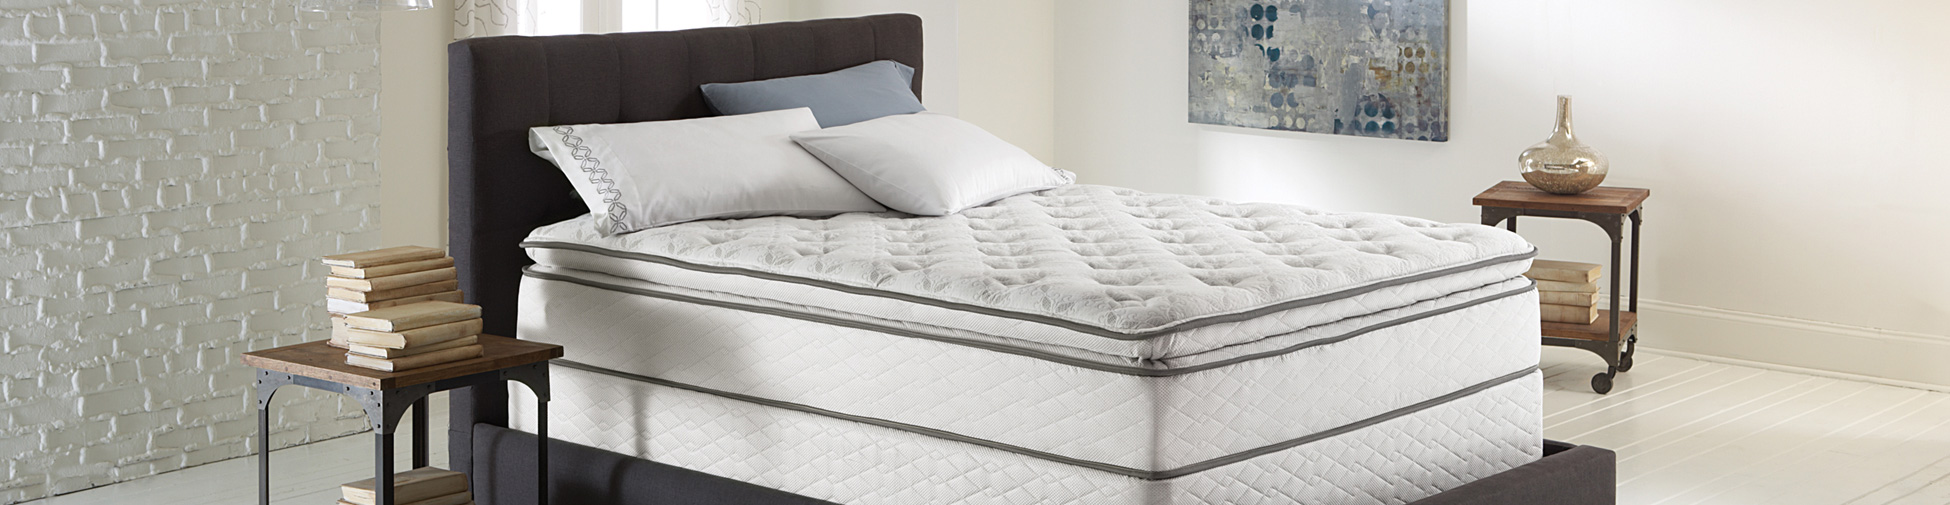 Serta Bedding Photo 01